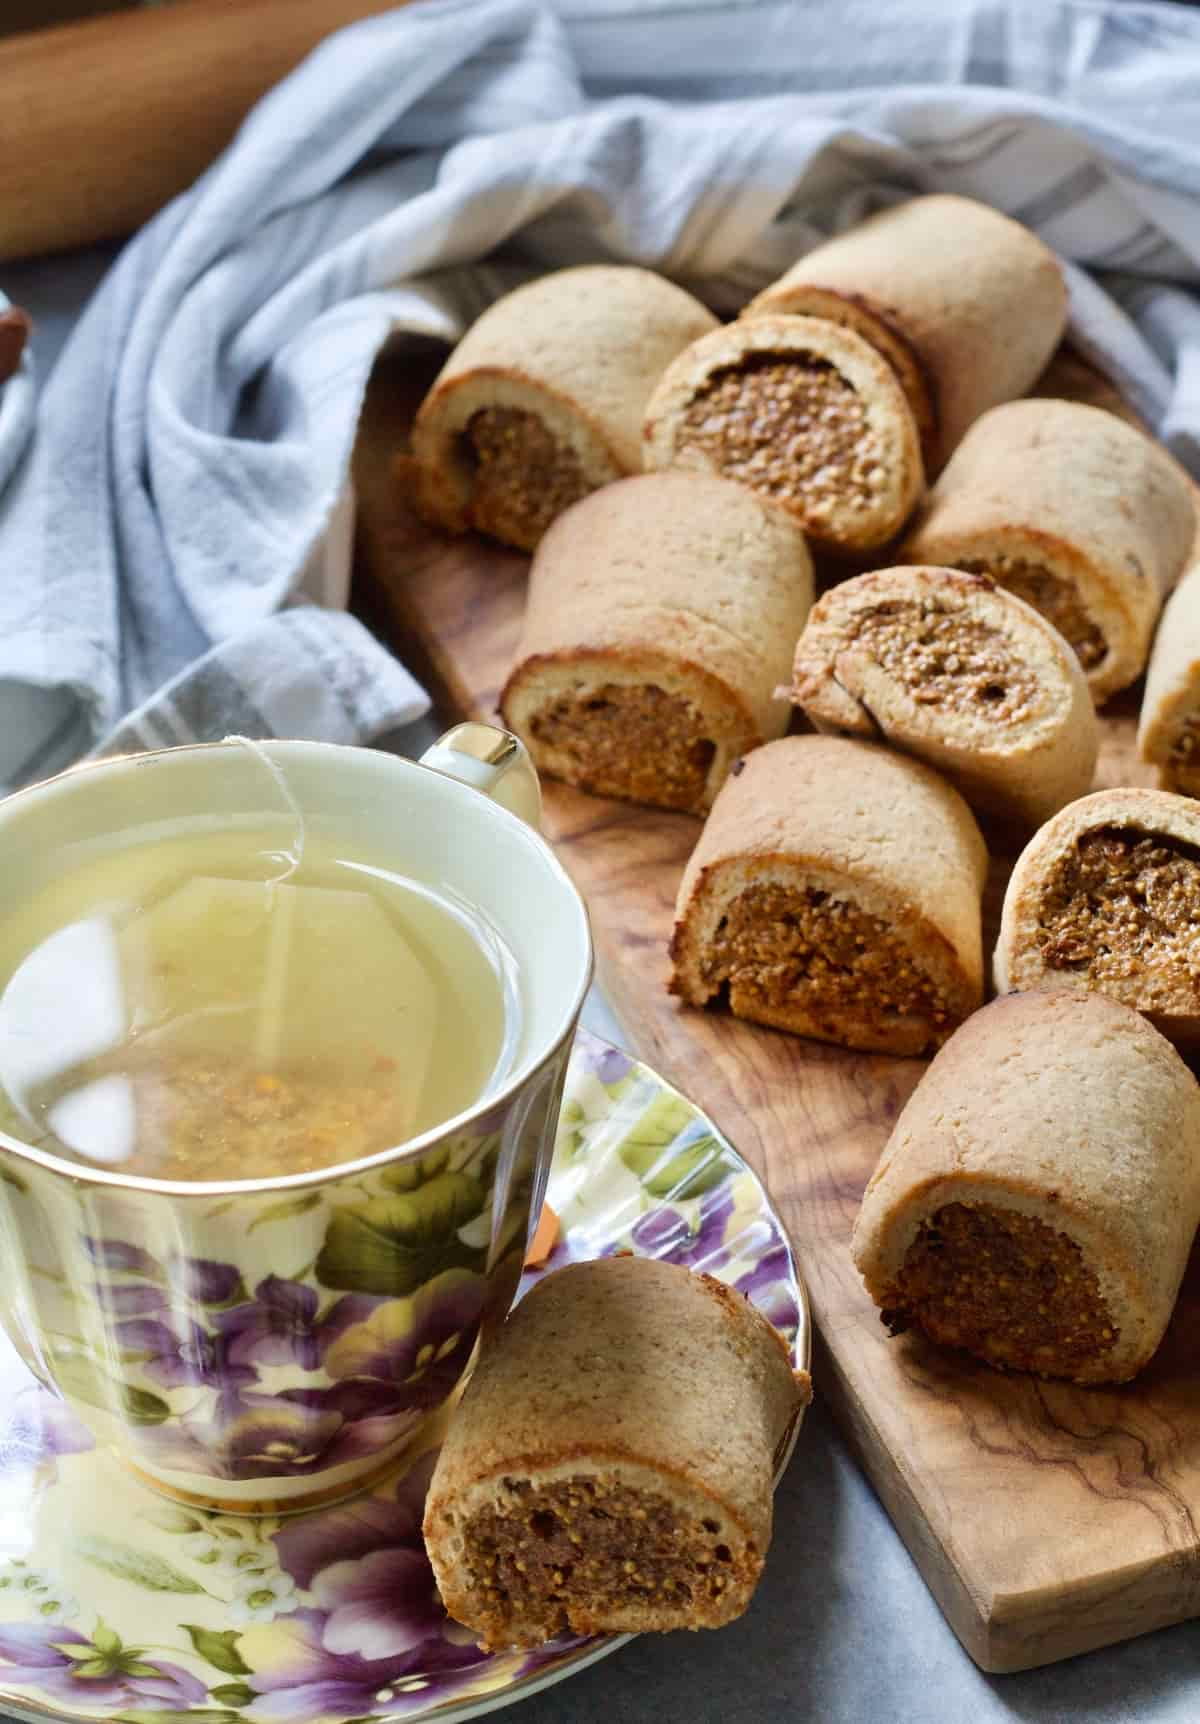 Fig roll on a saucer next to a cup of tea and more on a board.